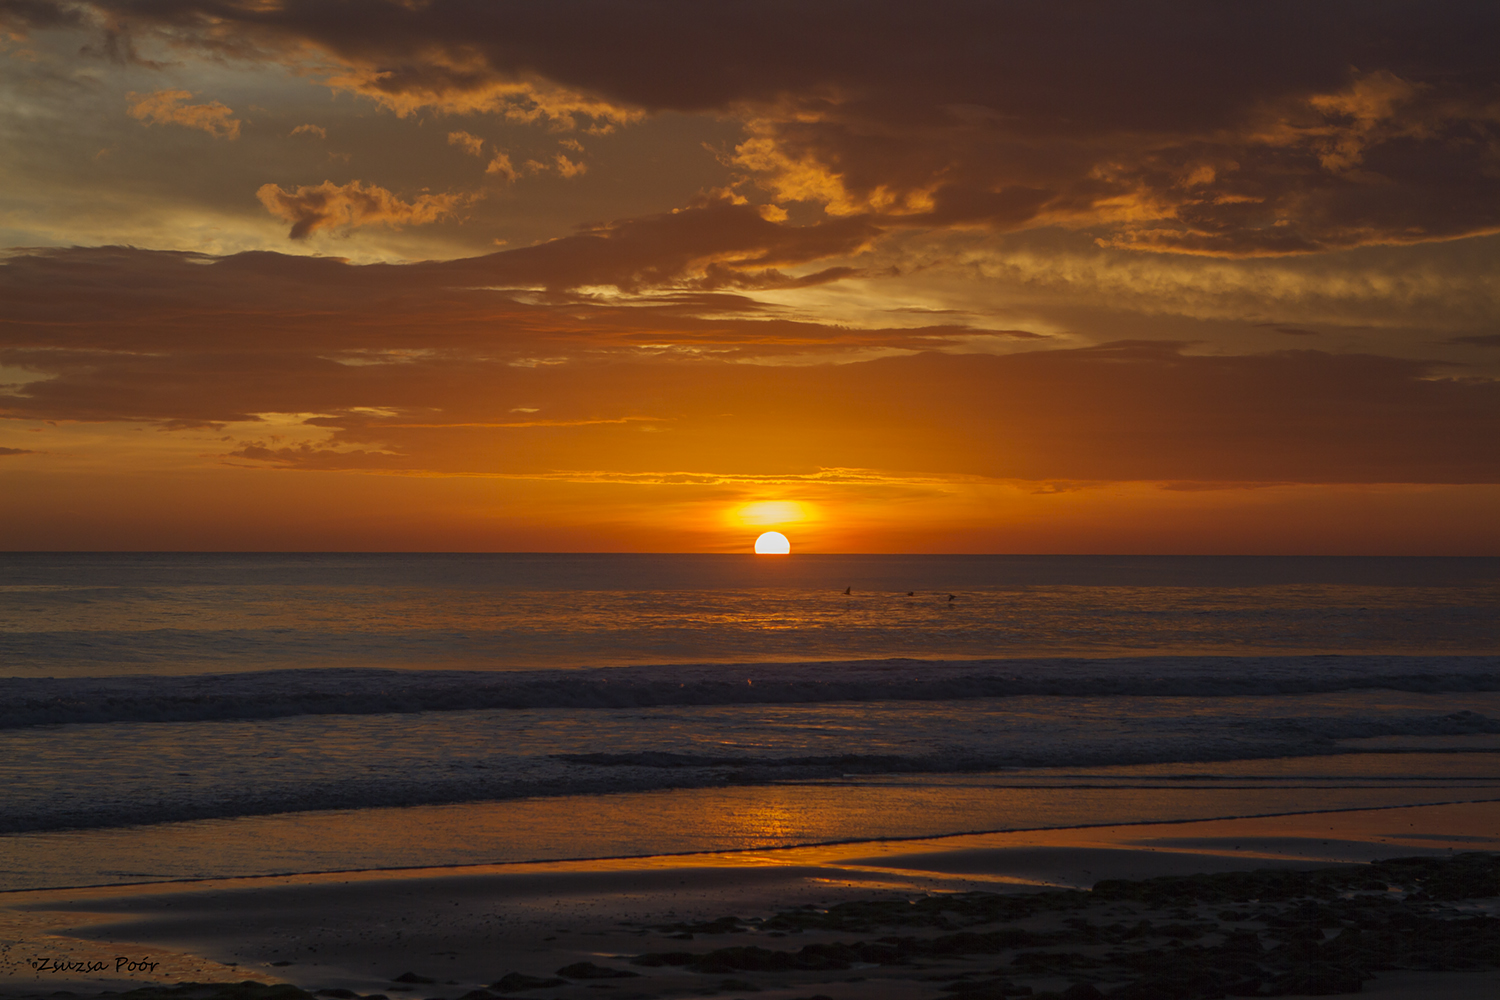 HulaKai Hotel and Ecological Community, Nicaragua Sunrise Sunset Times